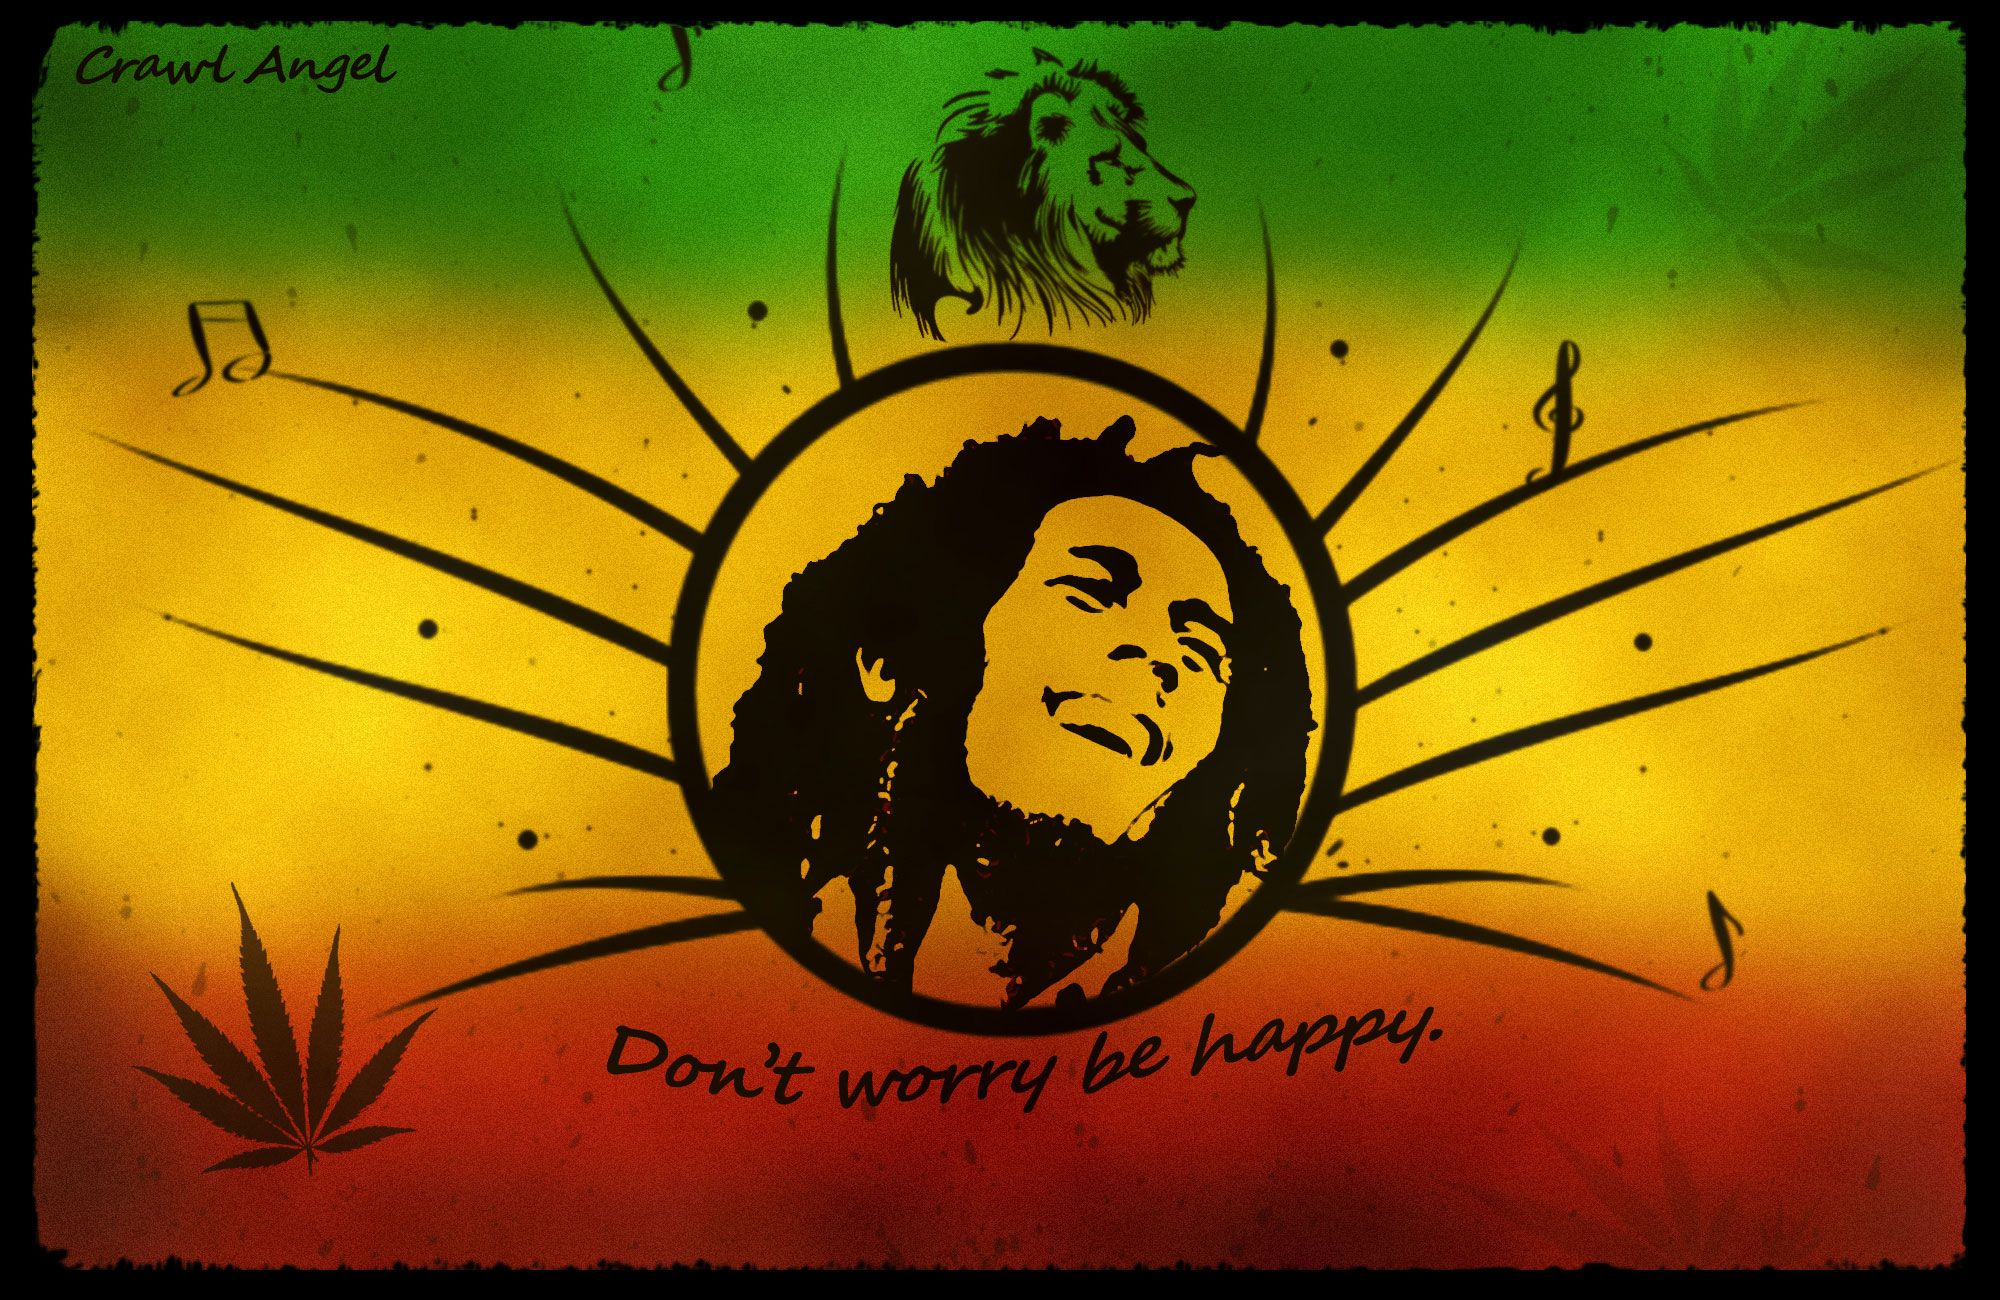 Bob Marley Wallpapers High Resolution And Quality Download Bob Marley Happy Wallpaper Bob Marley Painting